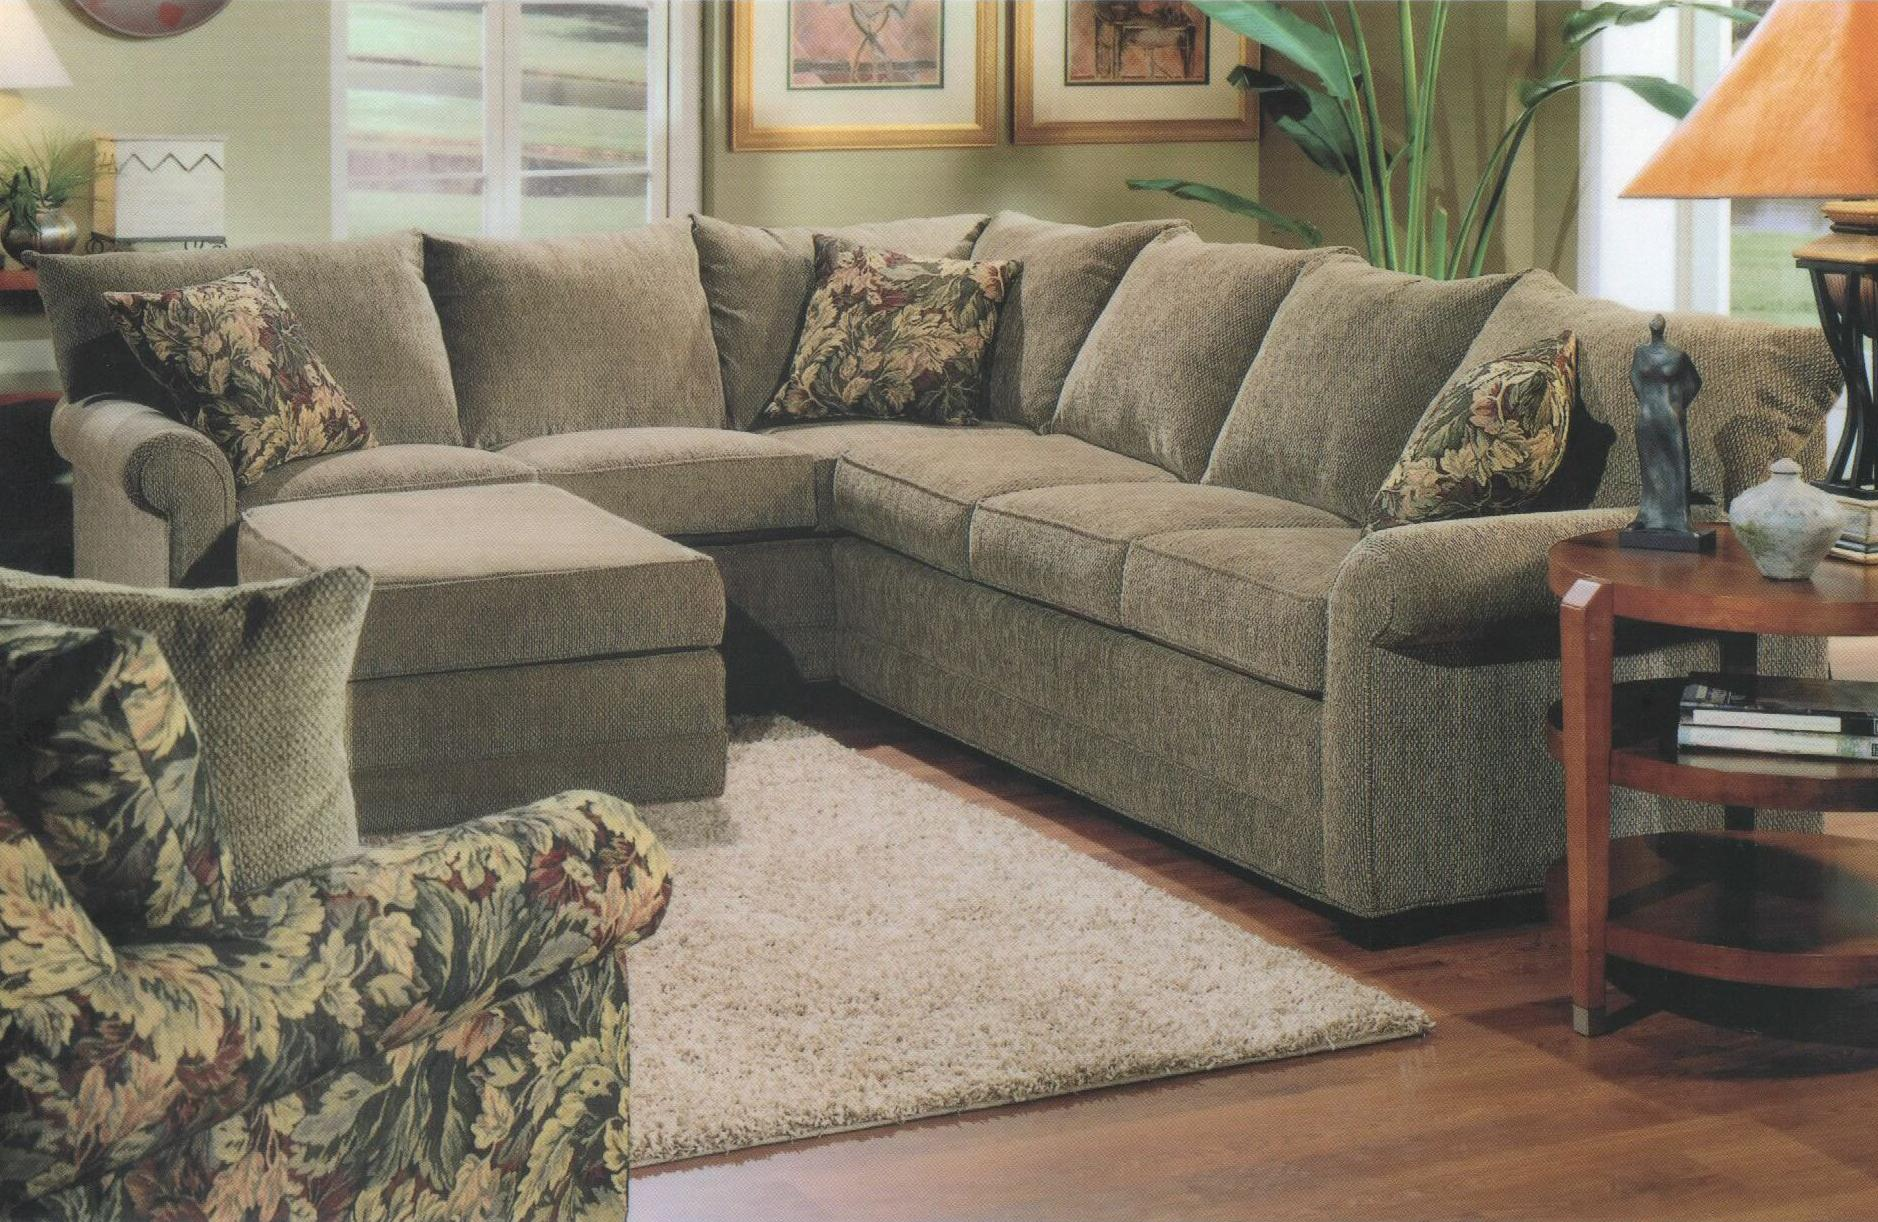 110 Sectional Sofa Group by Lancer at H.L. Stephens